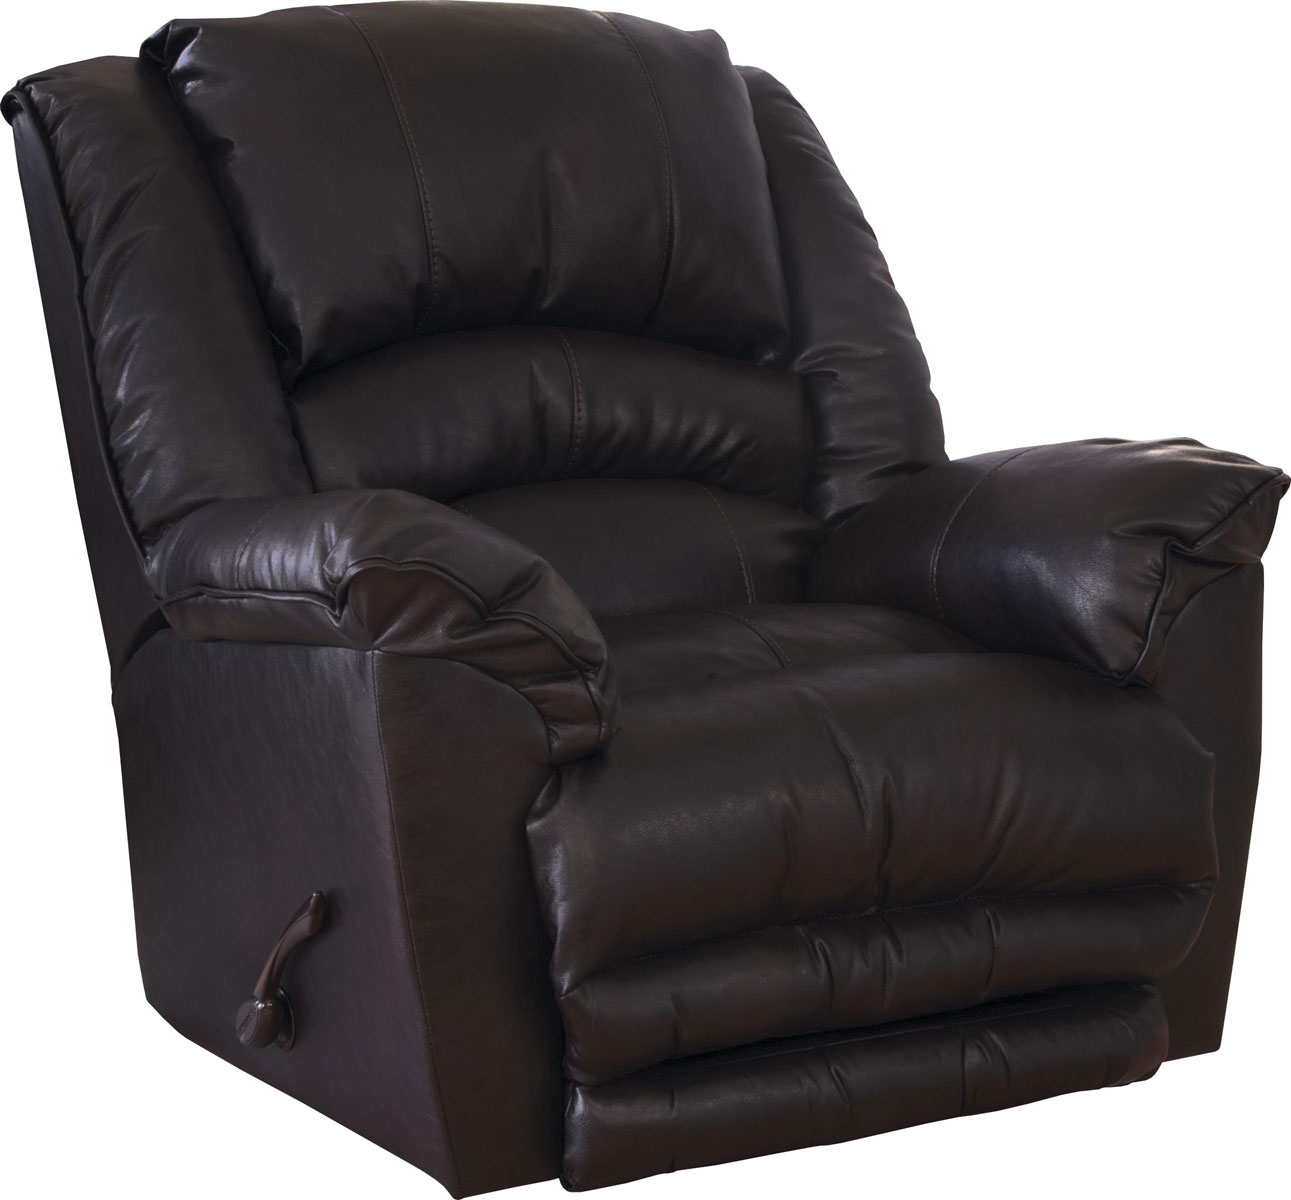 Catnapper filmore chaise rocker recliner oversized x tra for Catnapper recliner chaise